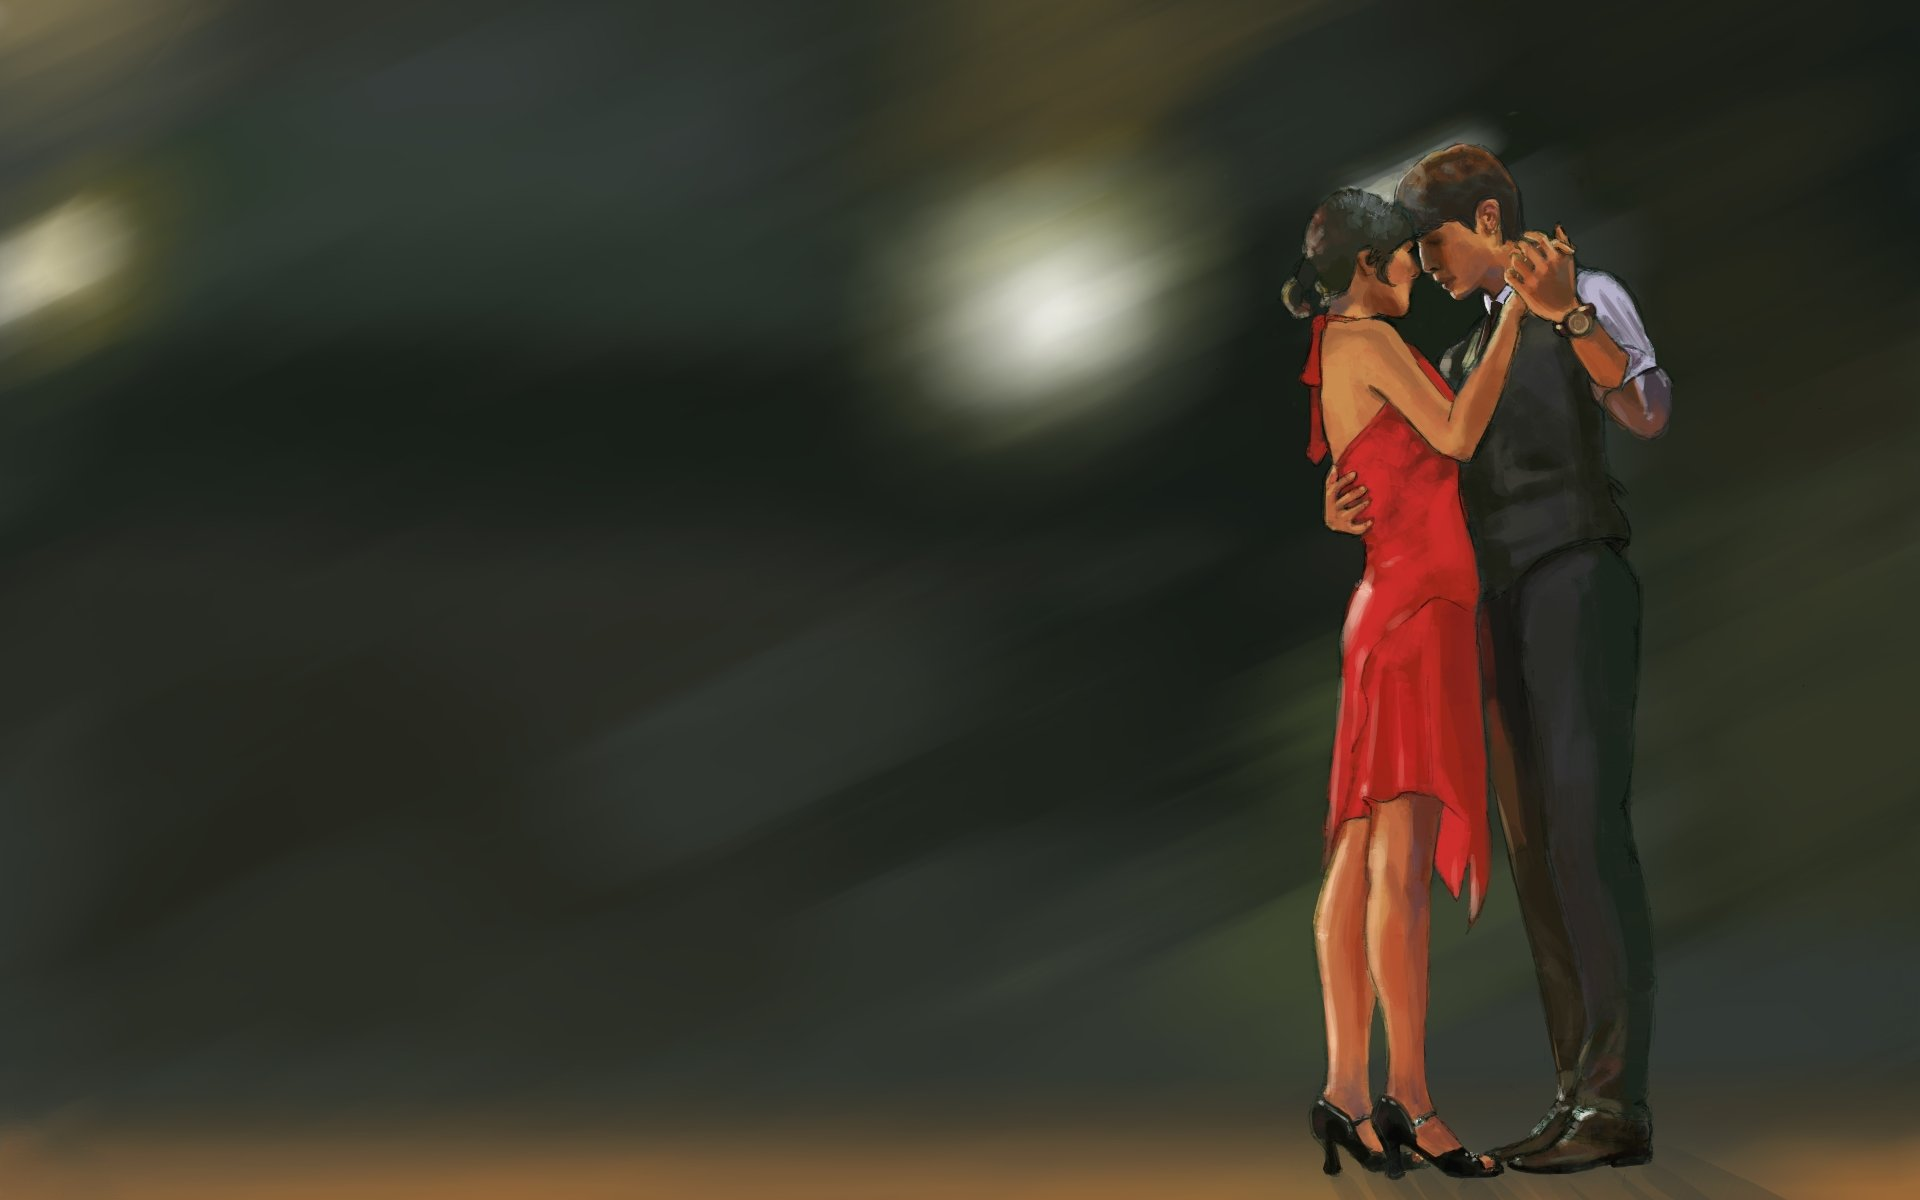 Scent of a Woman – Episode 8 Wallpapers | Kolorful Palette